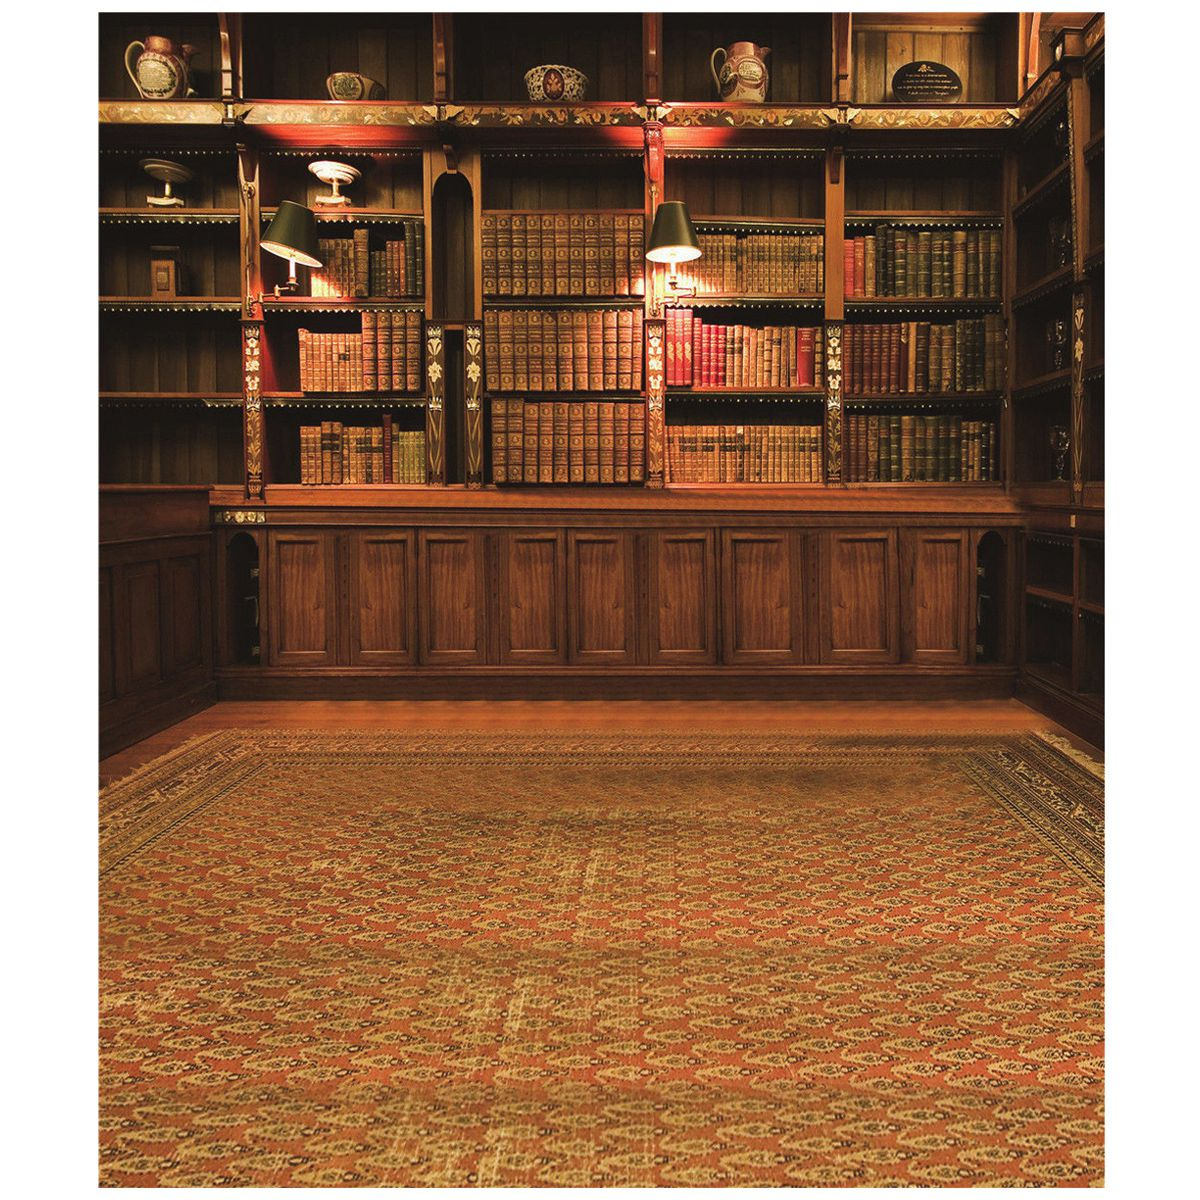 Retro Study Library Books Shelf Photography Photo Background Backdrop Prop 3X5FT thin vinyl vintage book shelf backdrop book case library book store printed fabric photography background f 2686